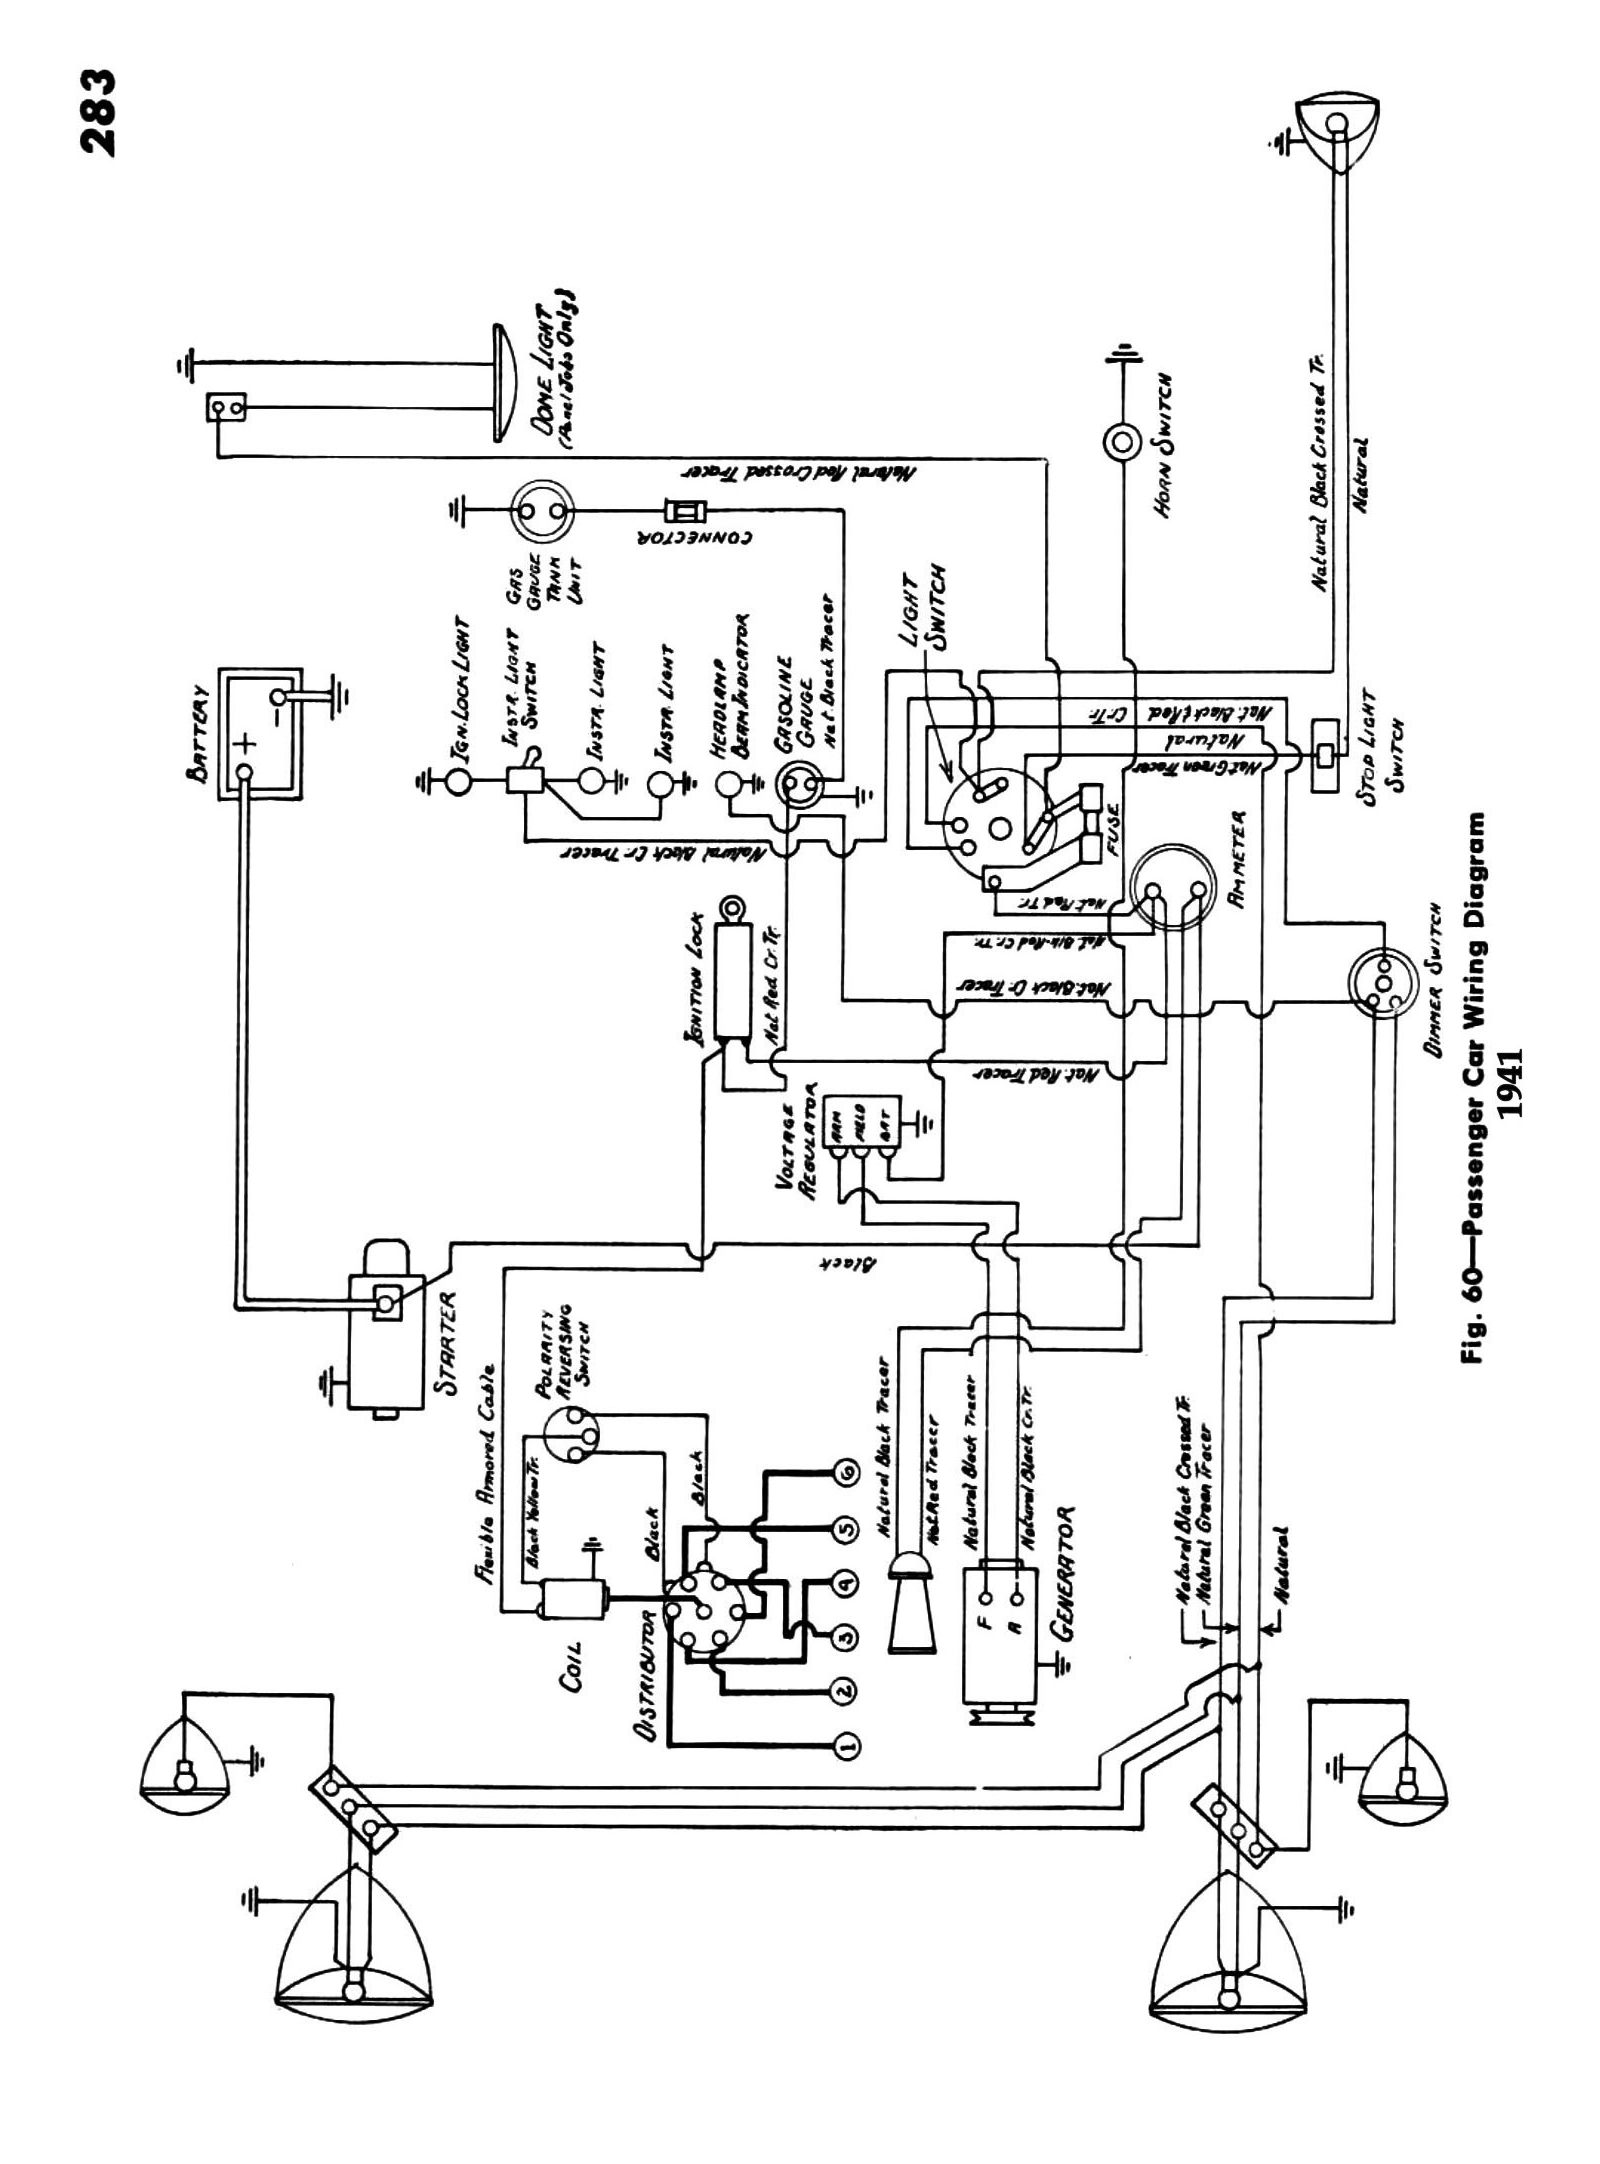 Chevy Wiring Diagrams 2005 Suburban Diagram 1941 Passenger Car